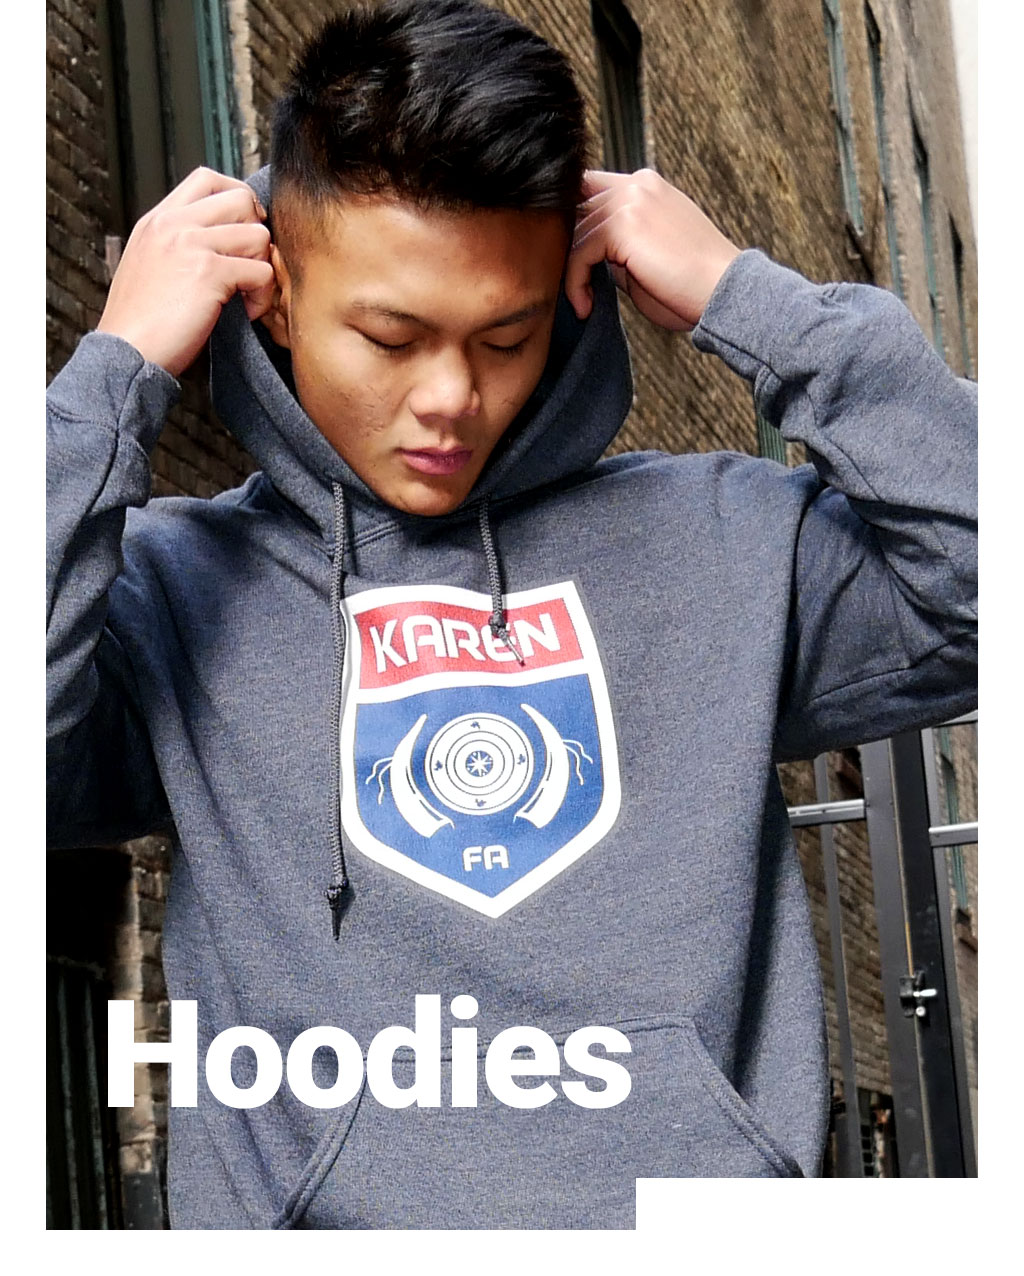 karen-national-team-full-image-header-mobile-hoodies-men